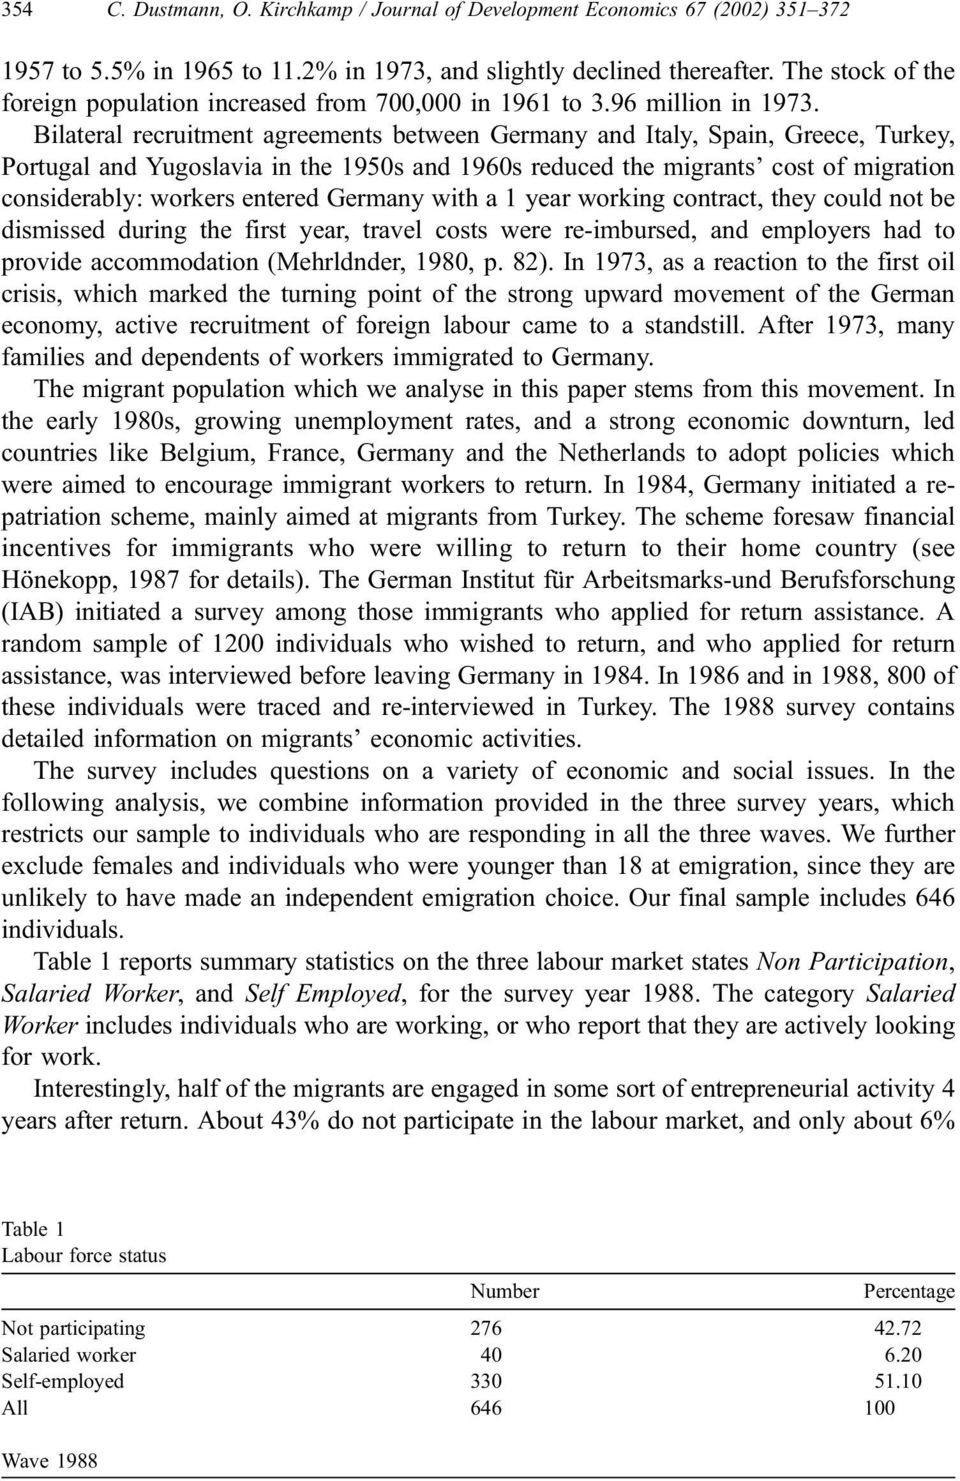 Bilateral recruitment agreements between Germany and Italy, Spain, Greece, Turkey, Portugal and Yugoslavia in the 1950s and 1960s reduced the migrants cost of migration considerably: workers entered